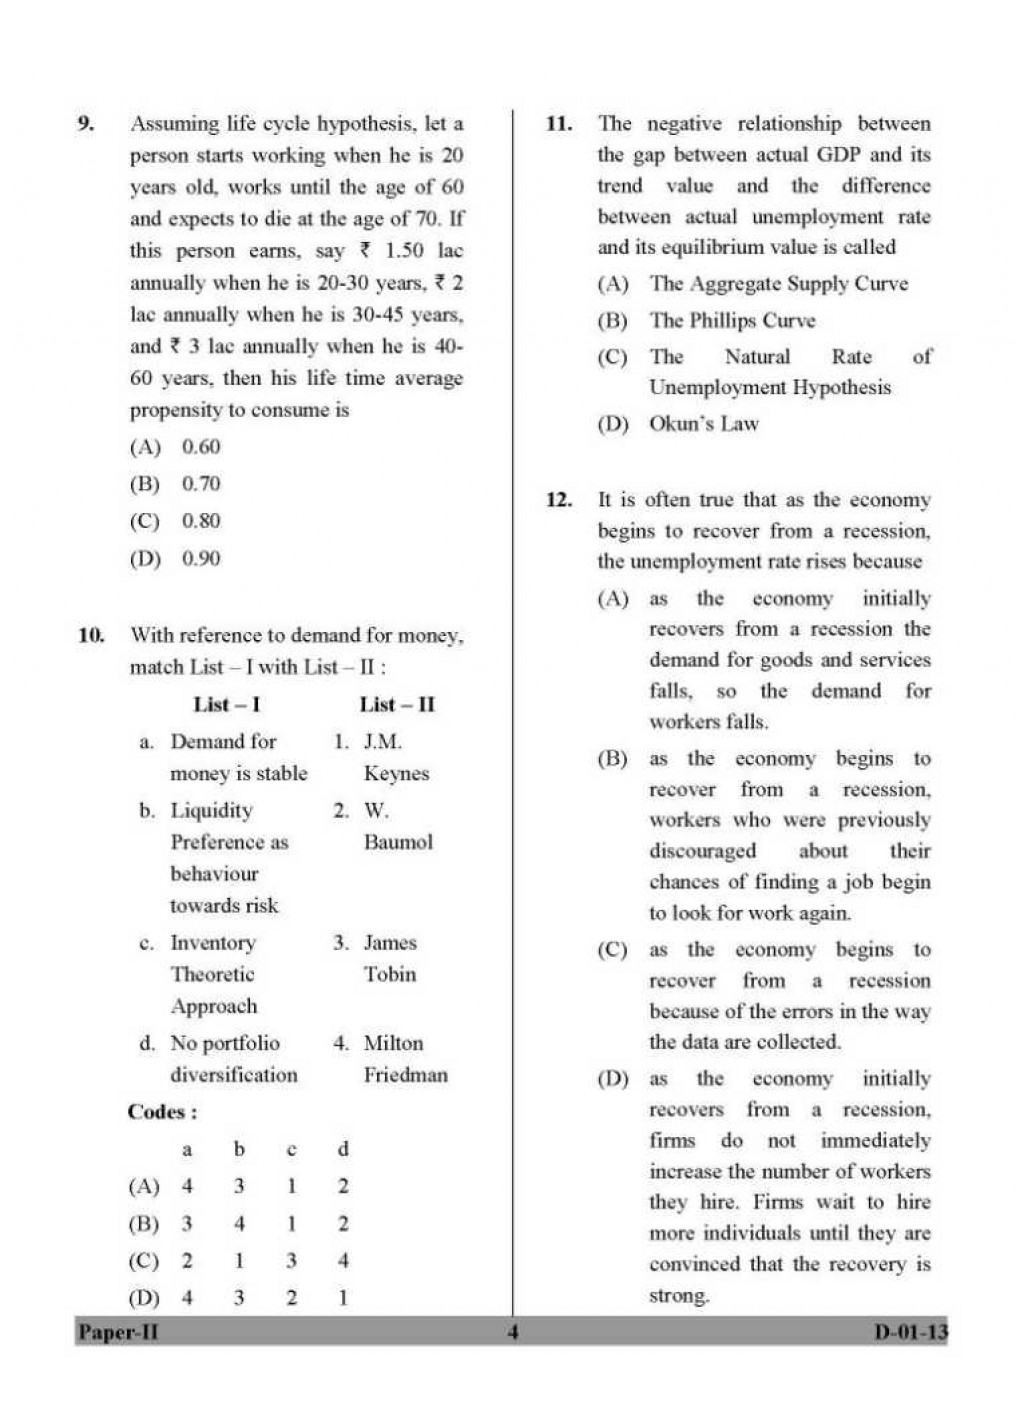 008 Research Paper Model Question Papers Economics In Stupendous Topics Finance Business International Large